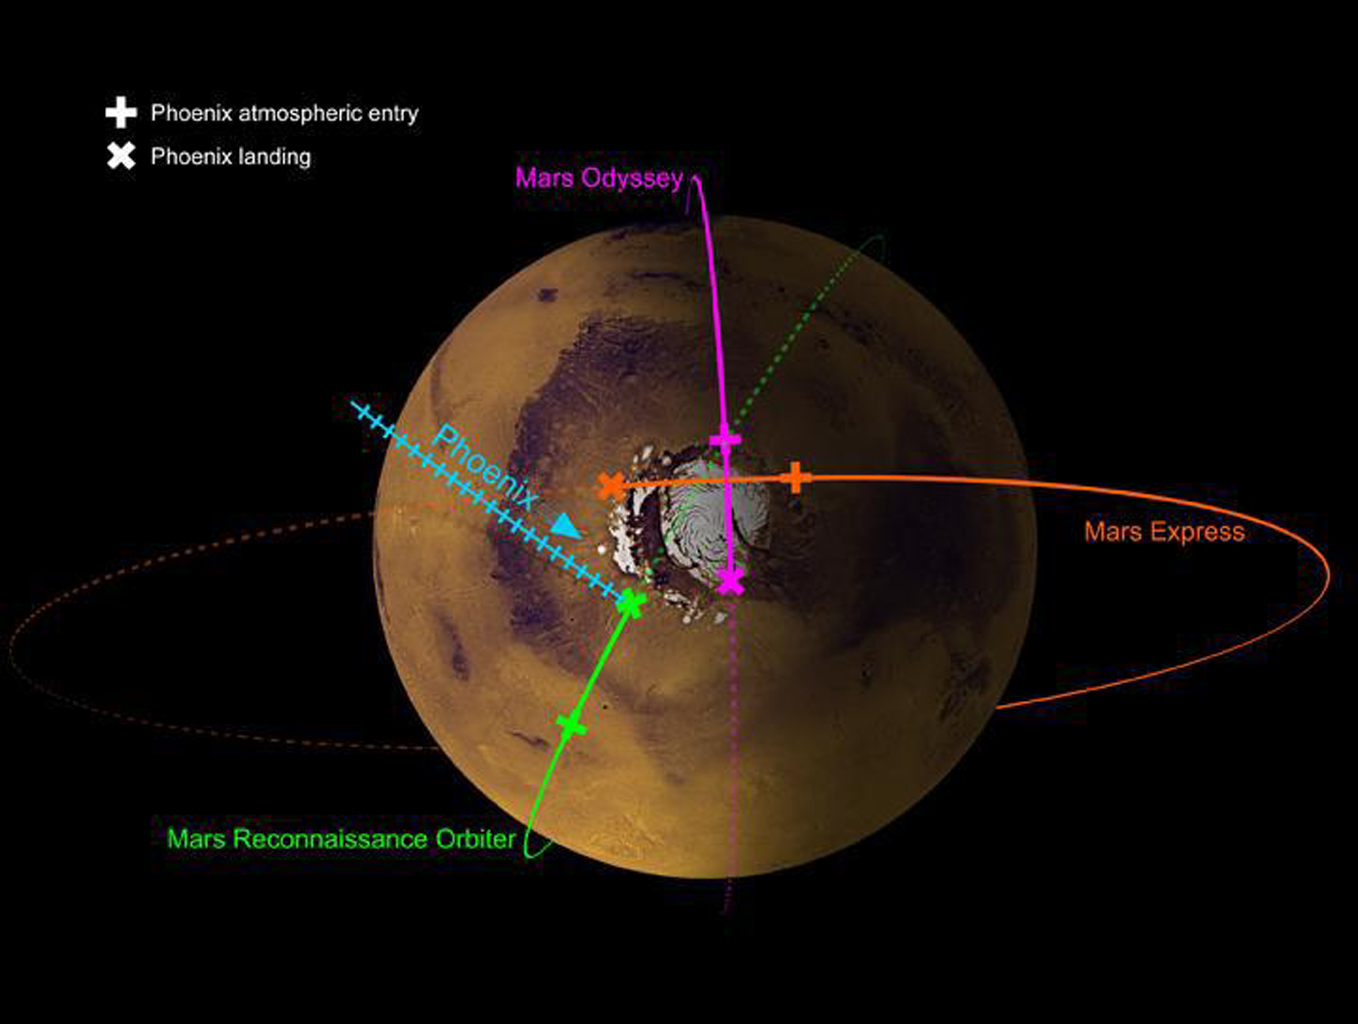 This image shows the paths of three spacecraft currently in orbit around Mars, as well as the path by which NASA's Phoenix Mars Lander will approach and land on the planet.